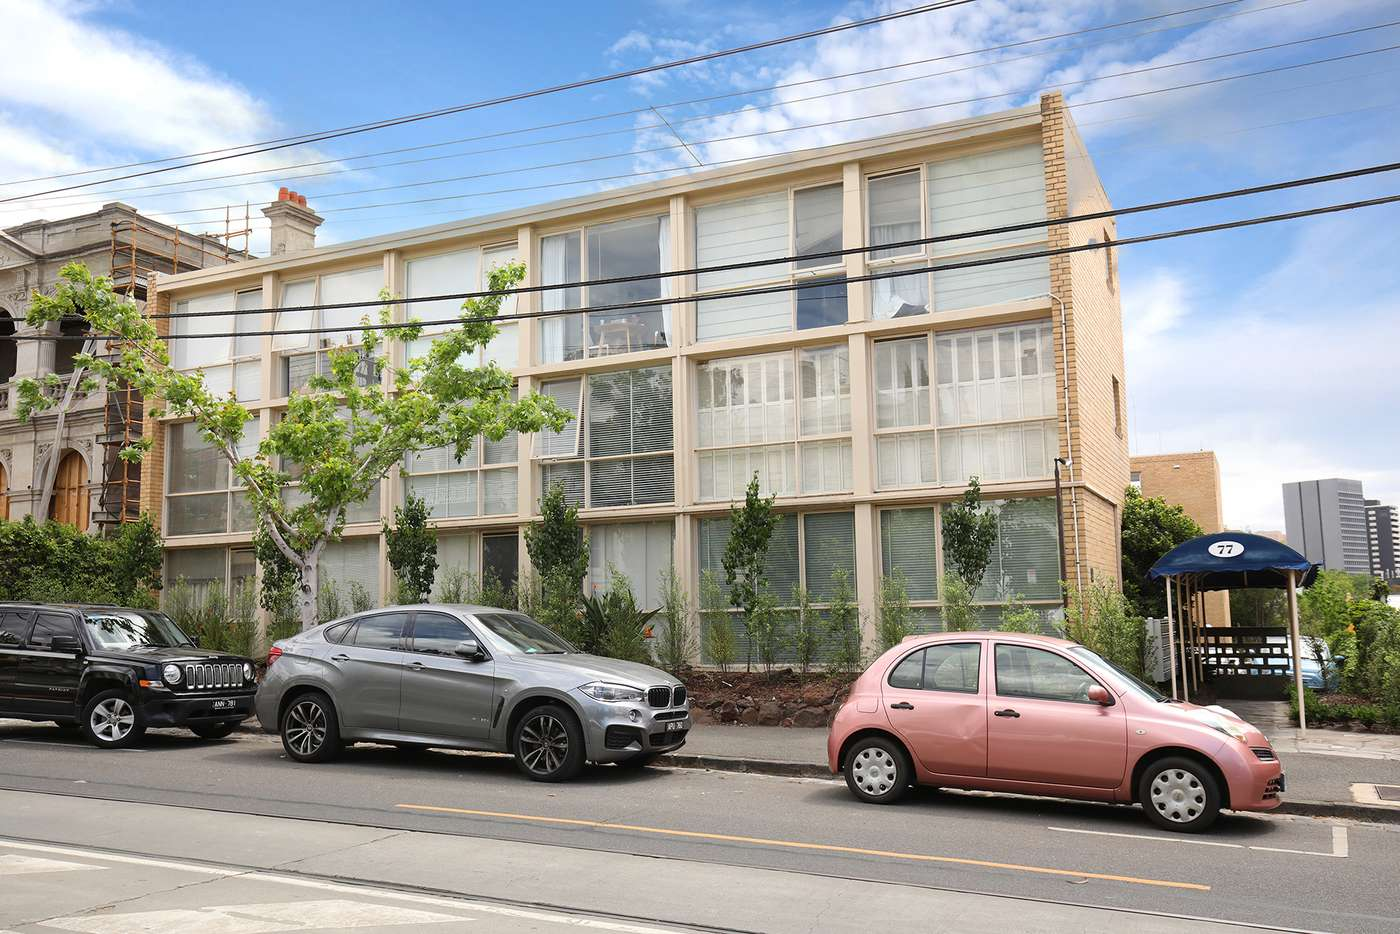 Main view of Homely apartment listing, 16/77 Park Street, South Yarra VIC 3141